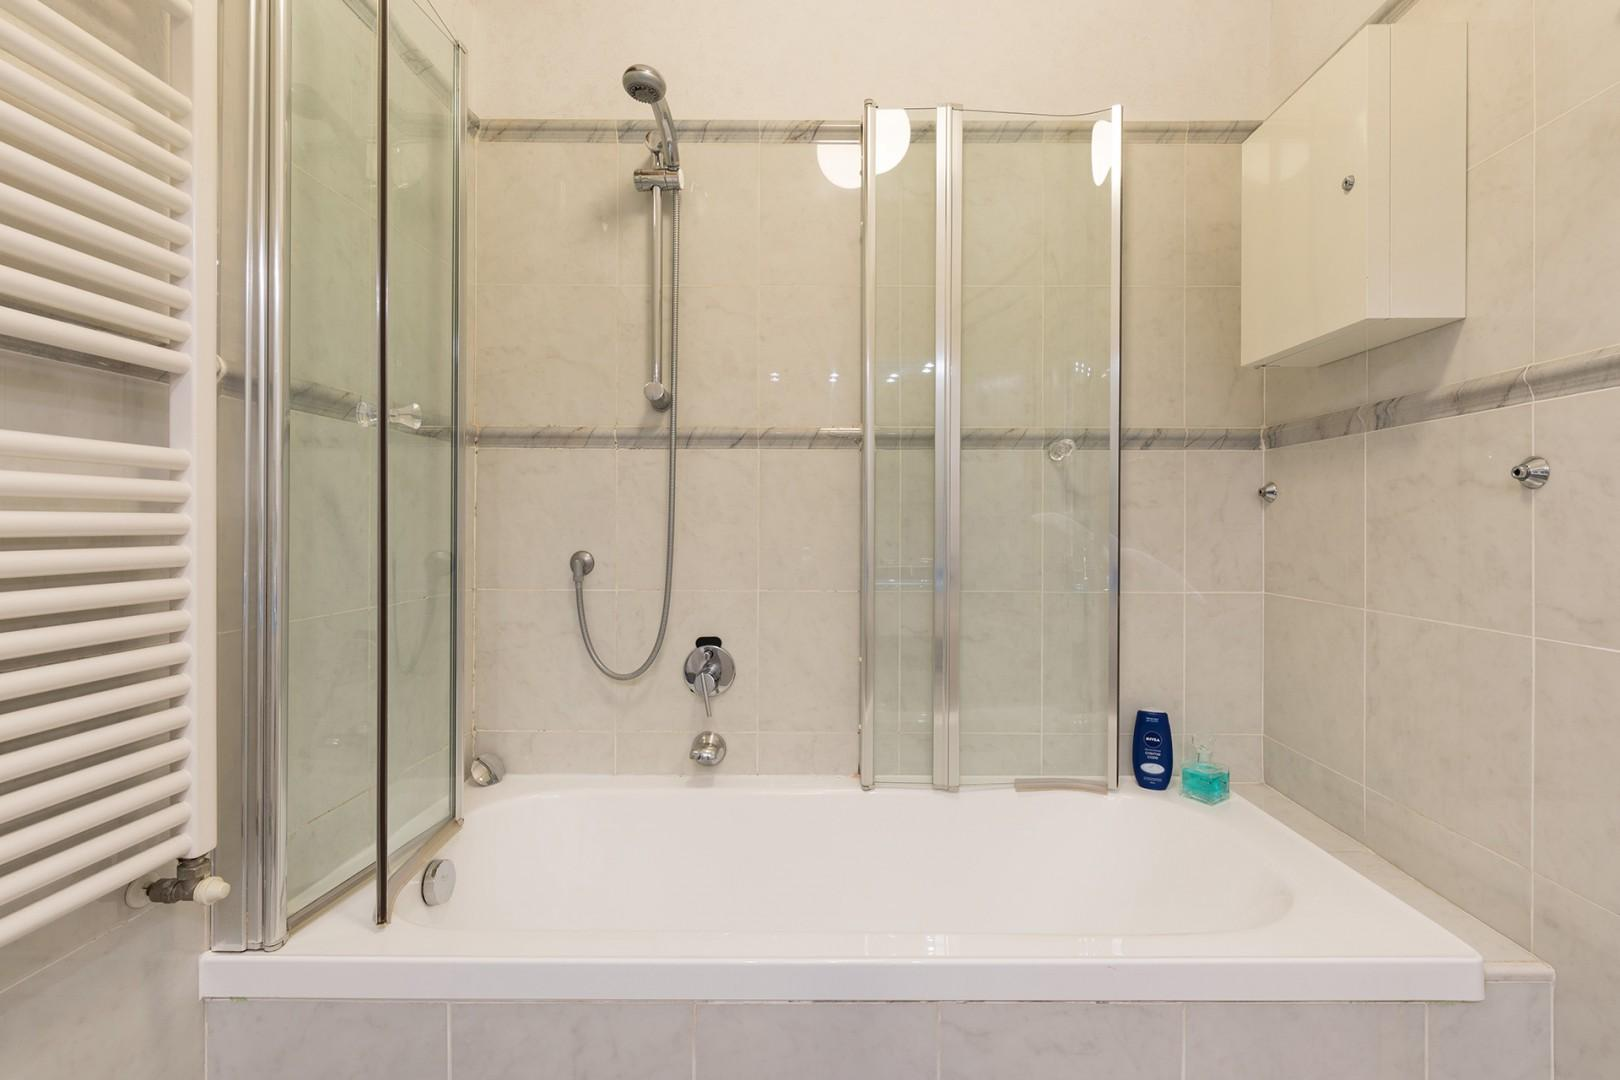 Ingenious shower enclosure which folds back flush to the wall, out of the way when taking a bath.